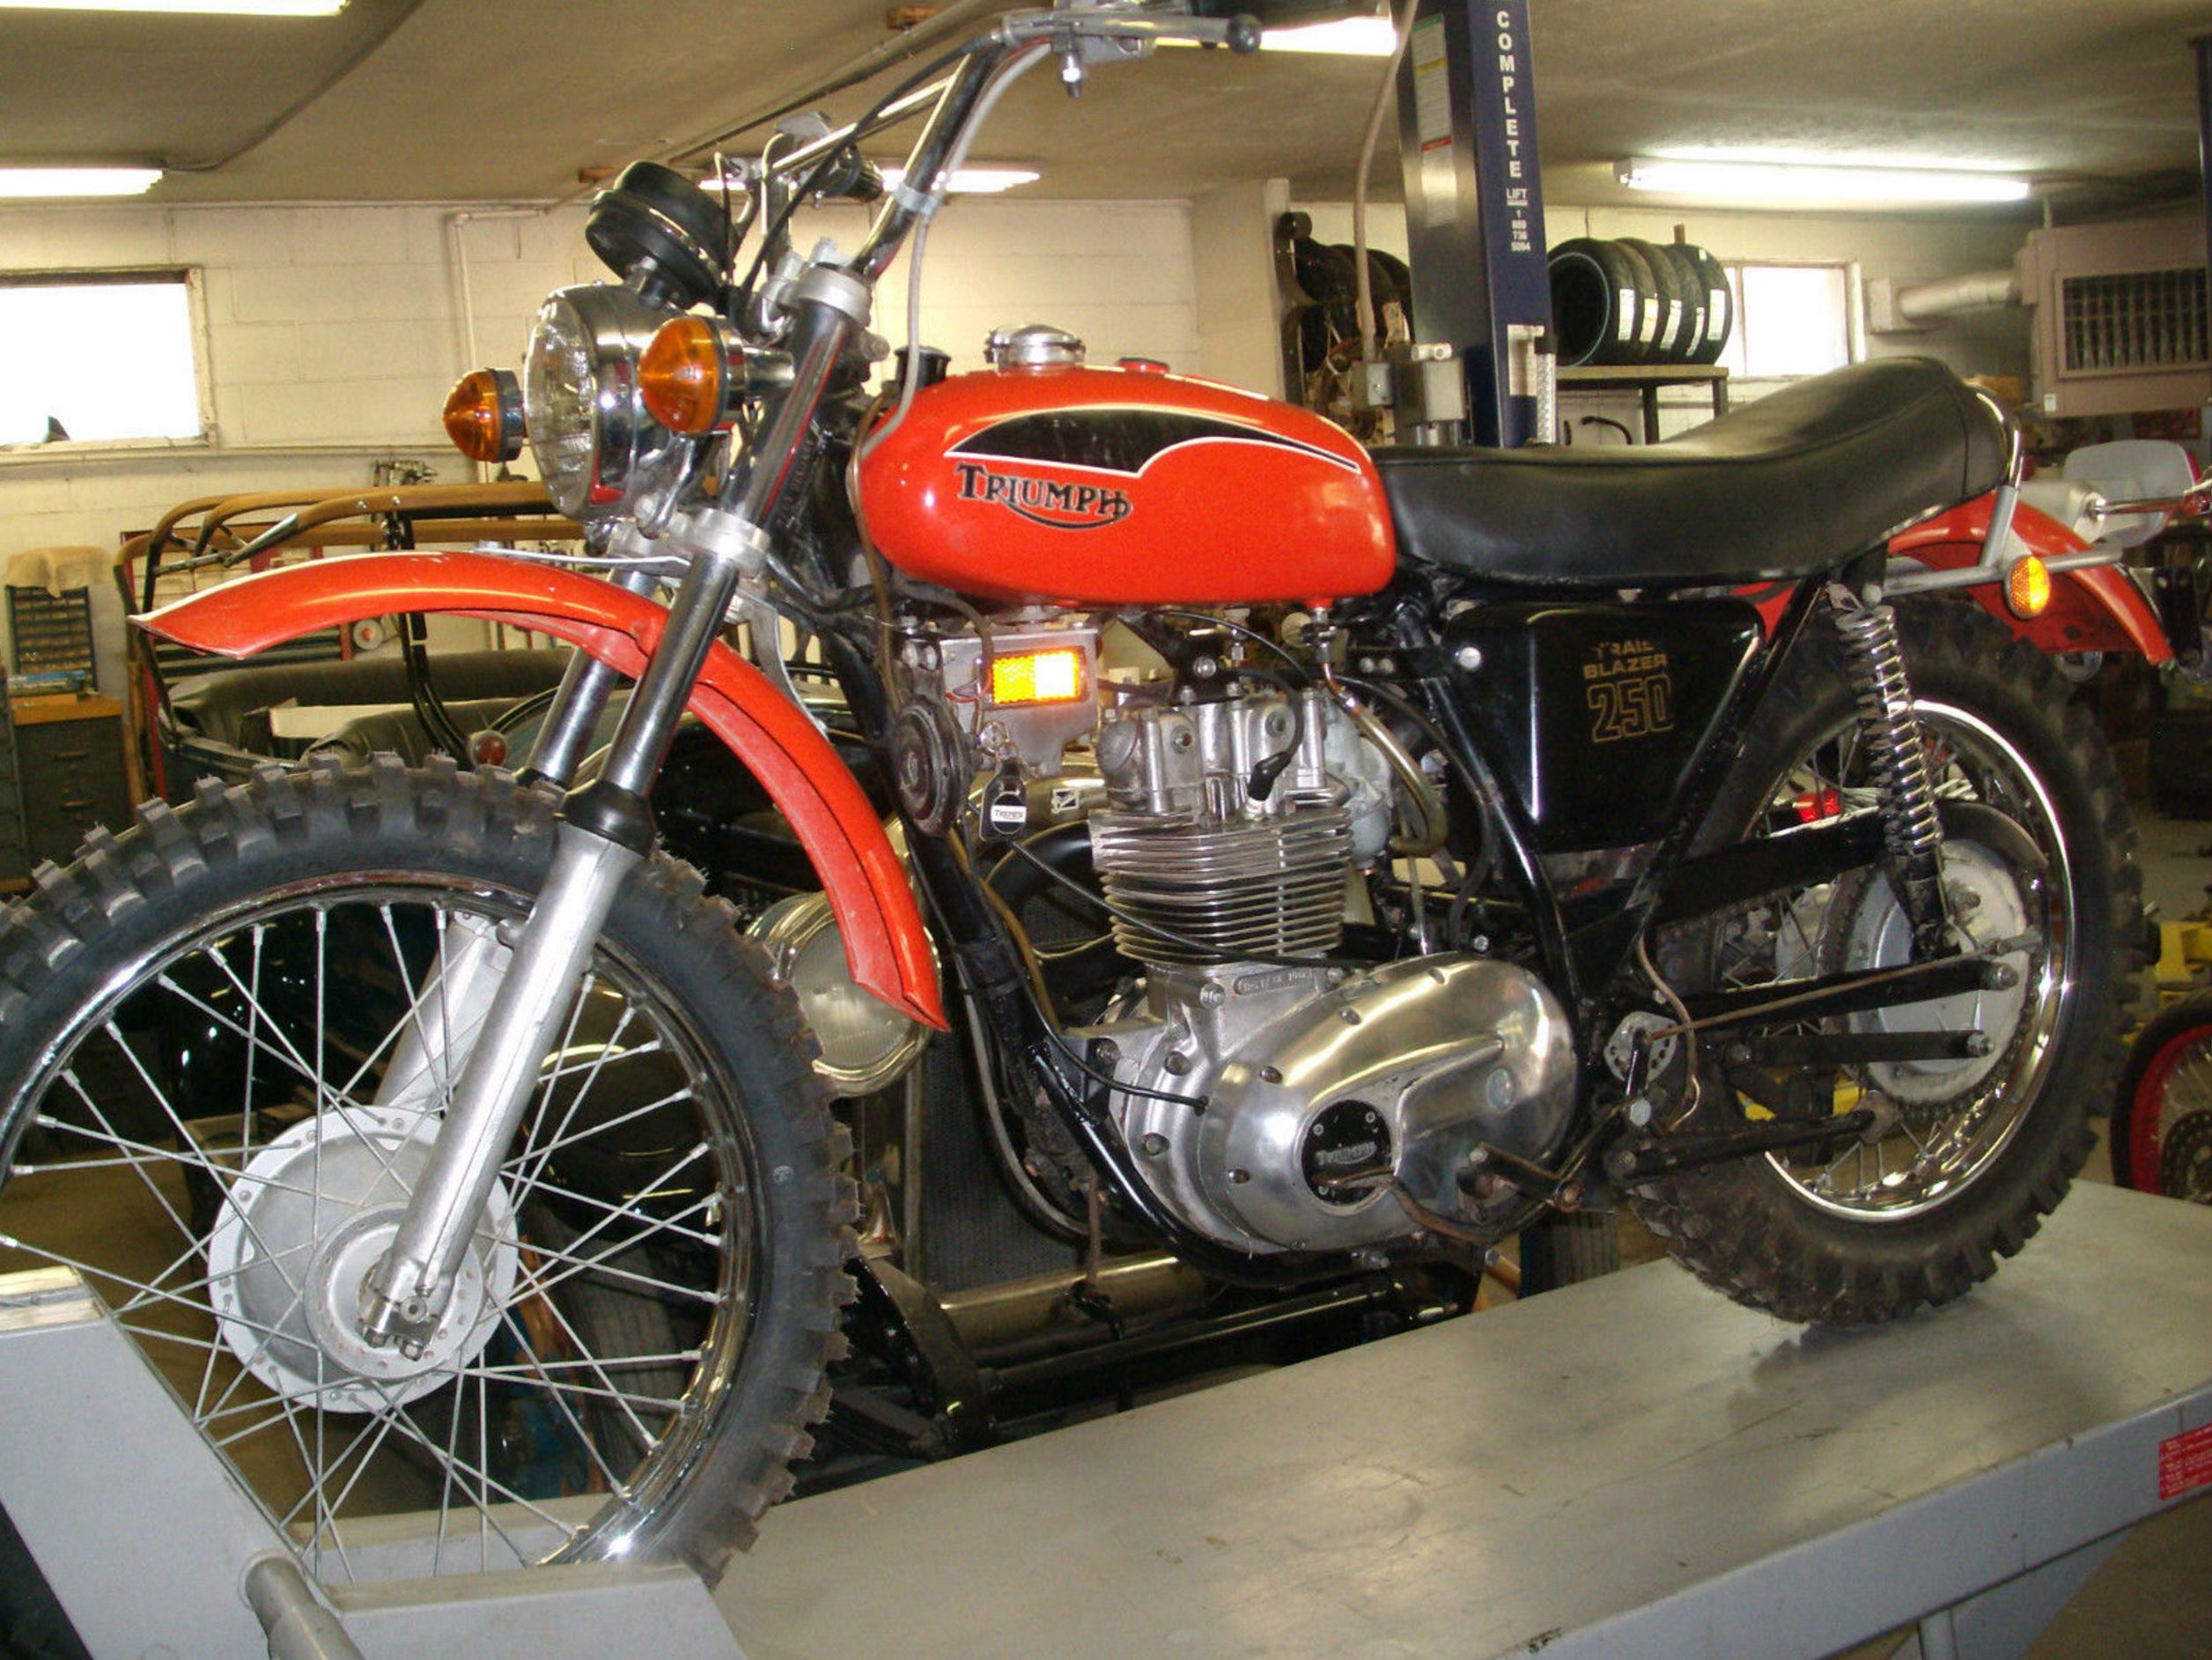 1971 Triumph T25T Trailblazer – Bike-urious